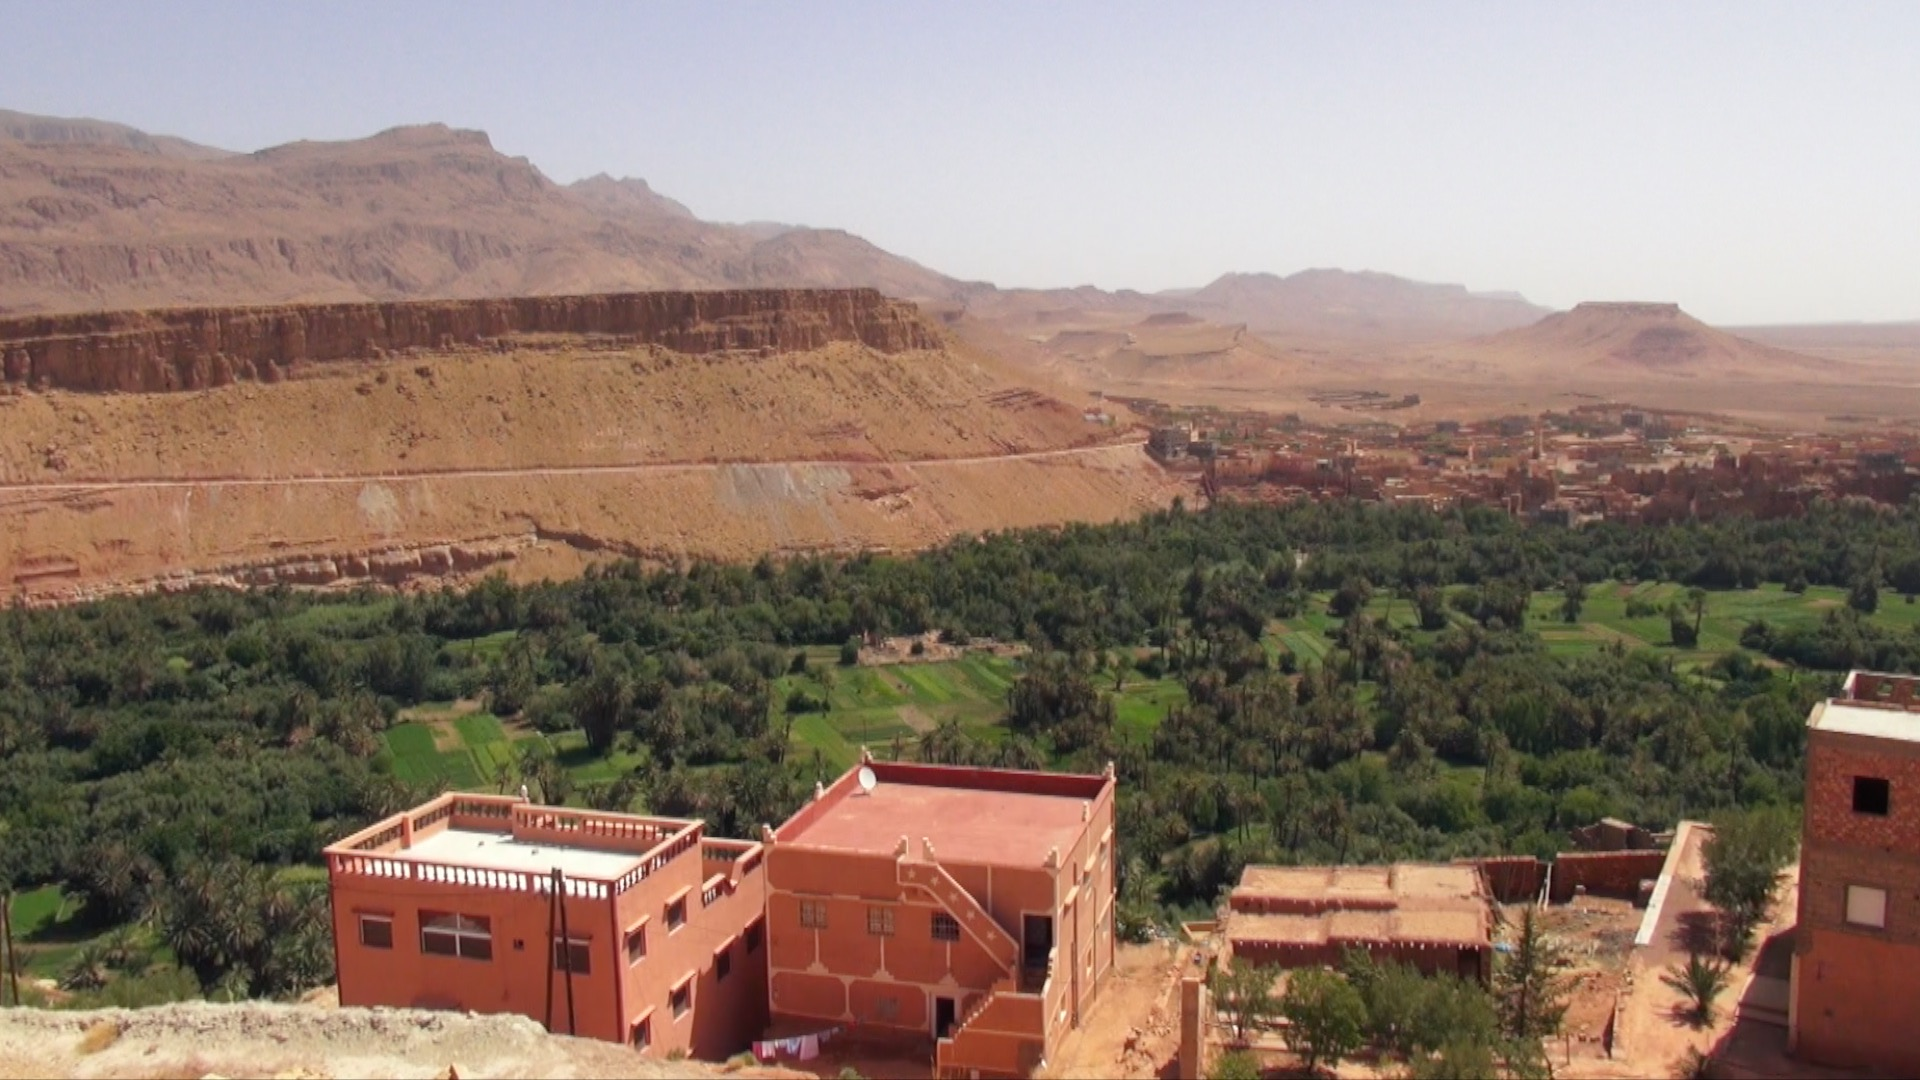 Tinghir City in Morocco